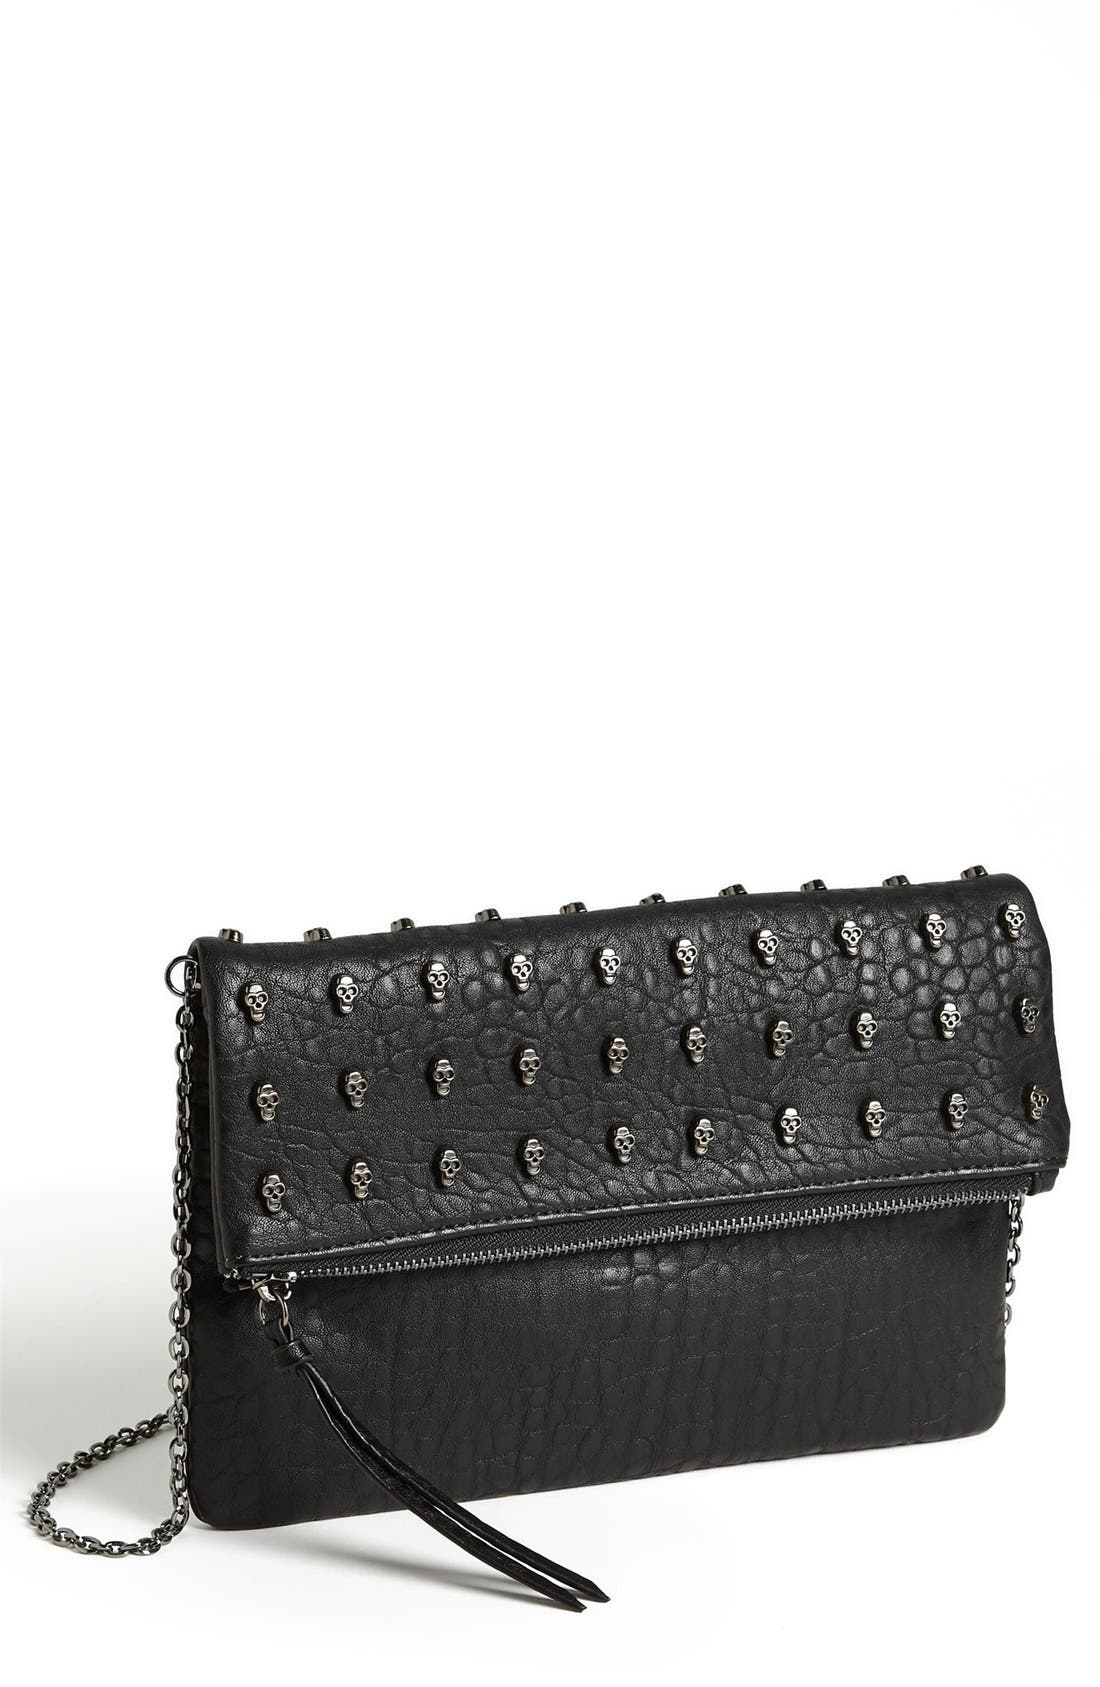 Alternate Image 1 Selected - Urban Expressions Handbags 'Jam' Clutch